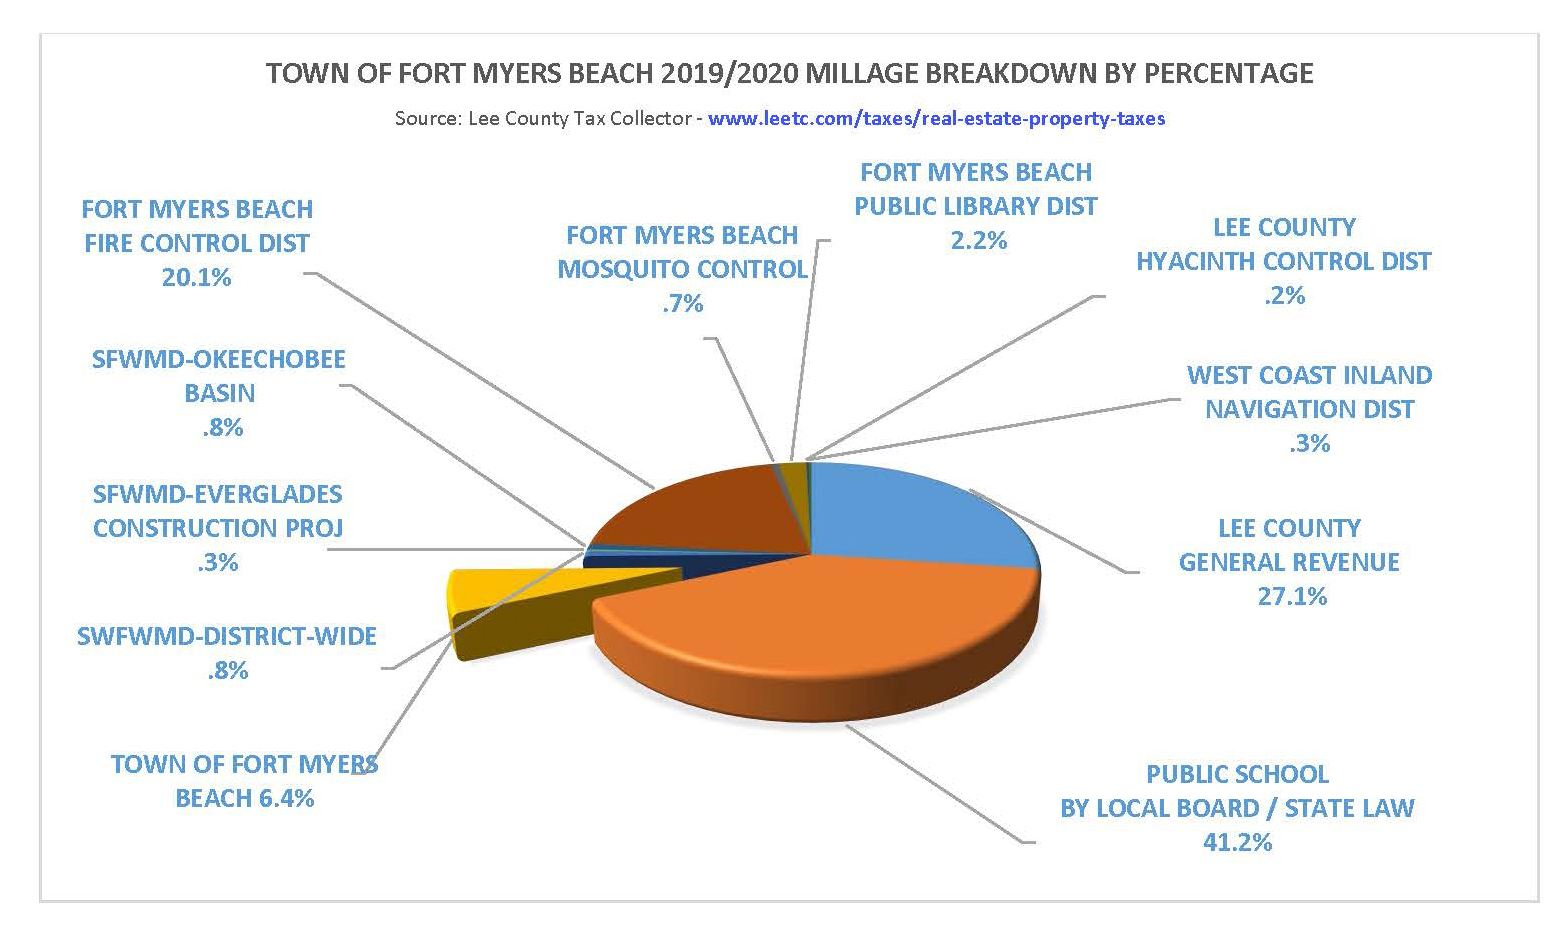 Town of Fort Myers Beach 2019-2020 Tax Breakdown - r8-7-20 by percentage